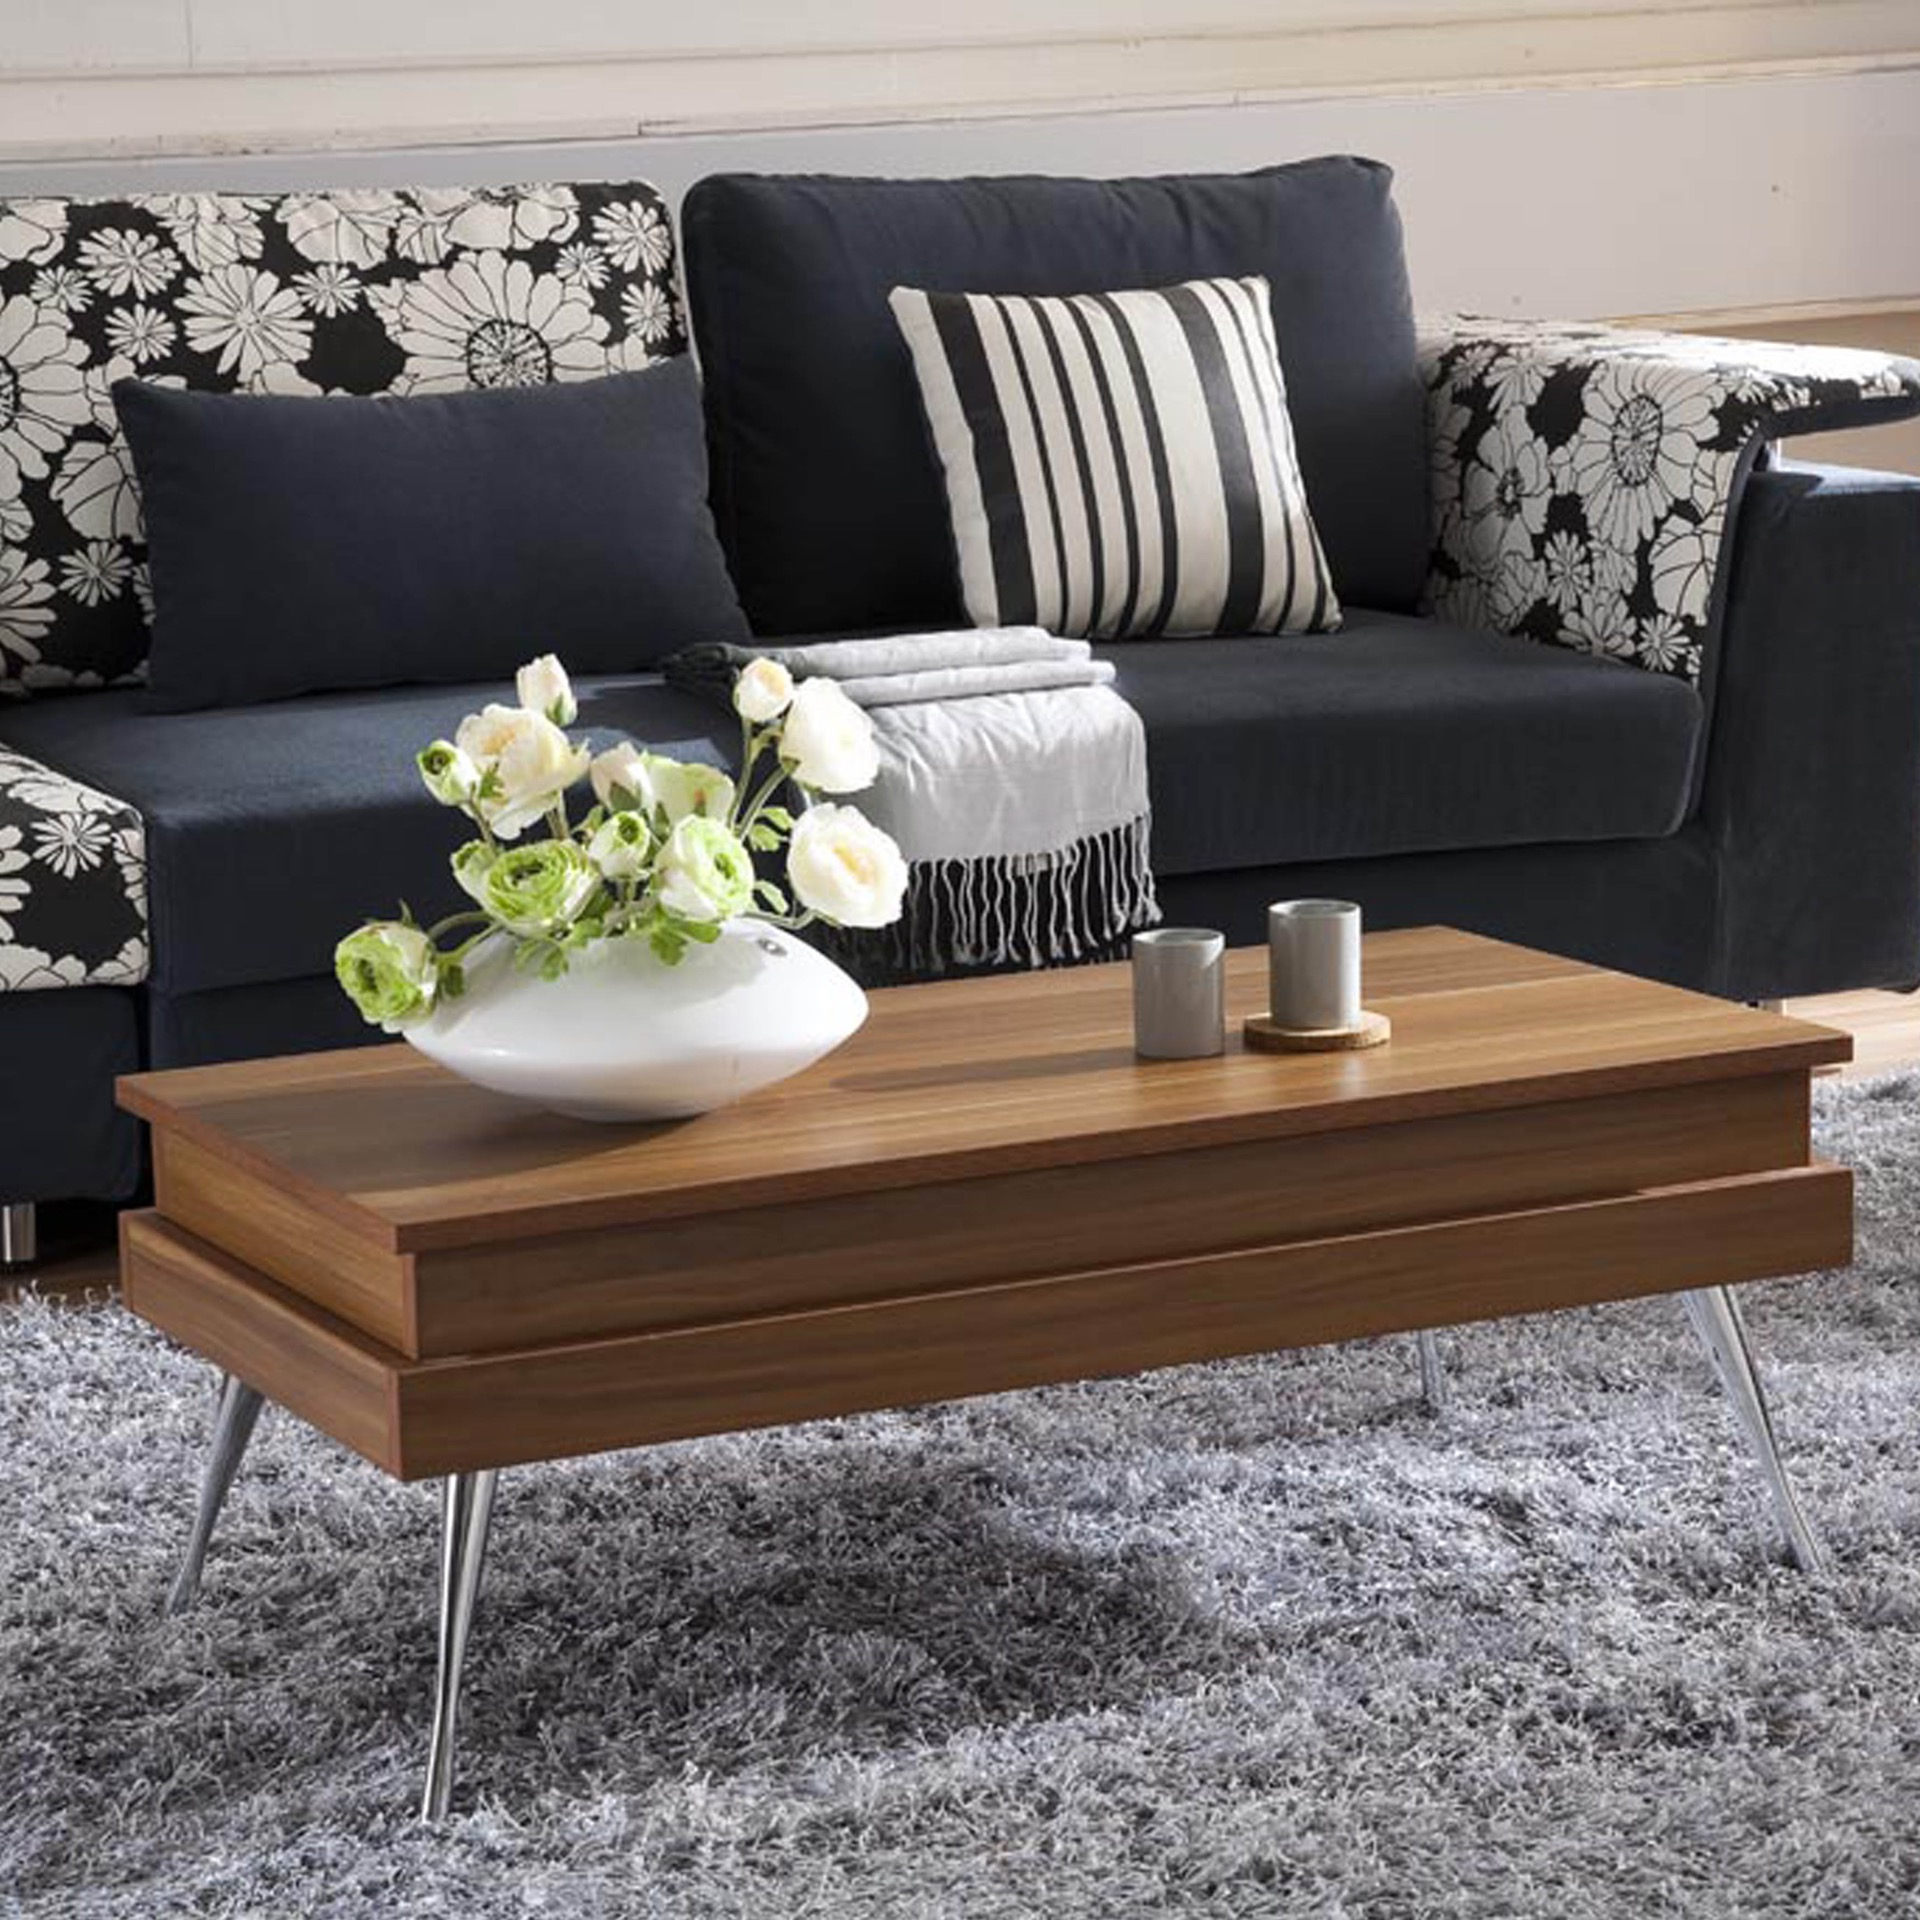 Koryo Lift Top Melamine Veneer Wood With Chrome Legs Coffee Table